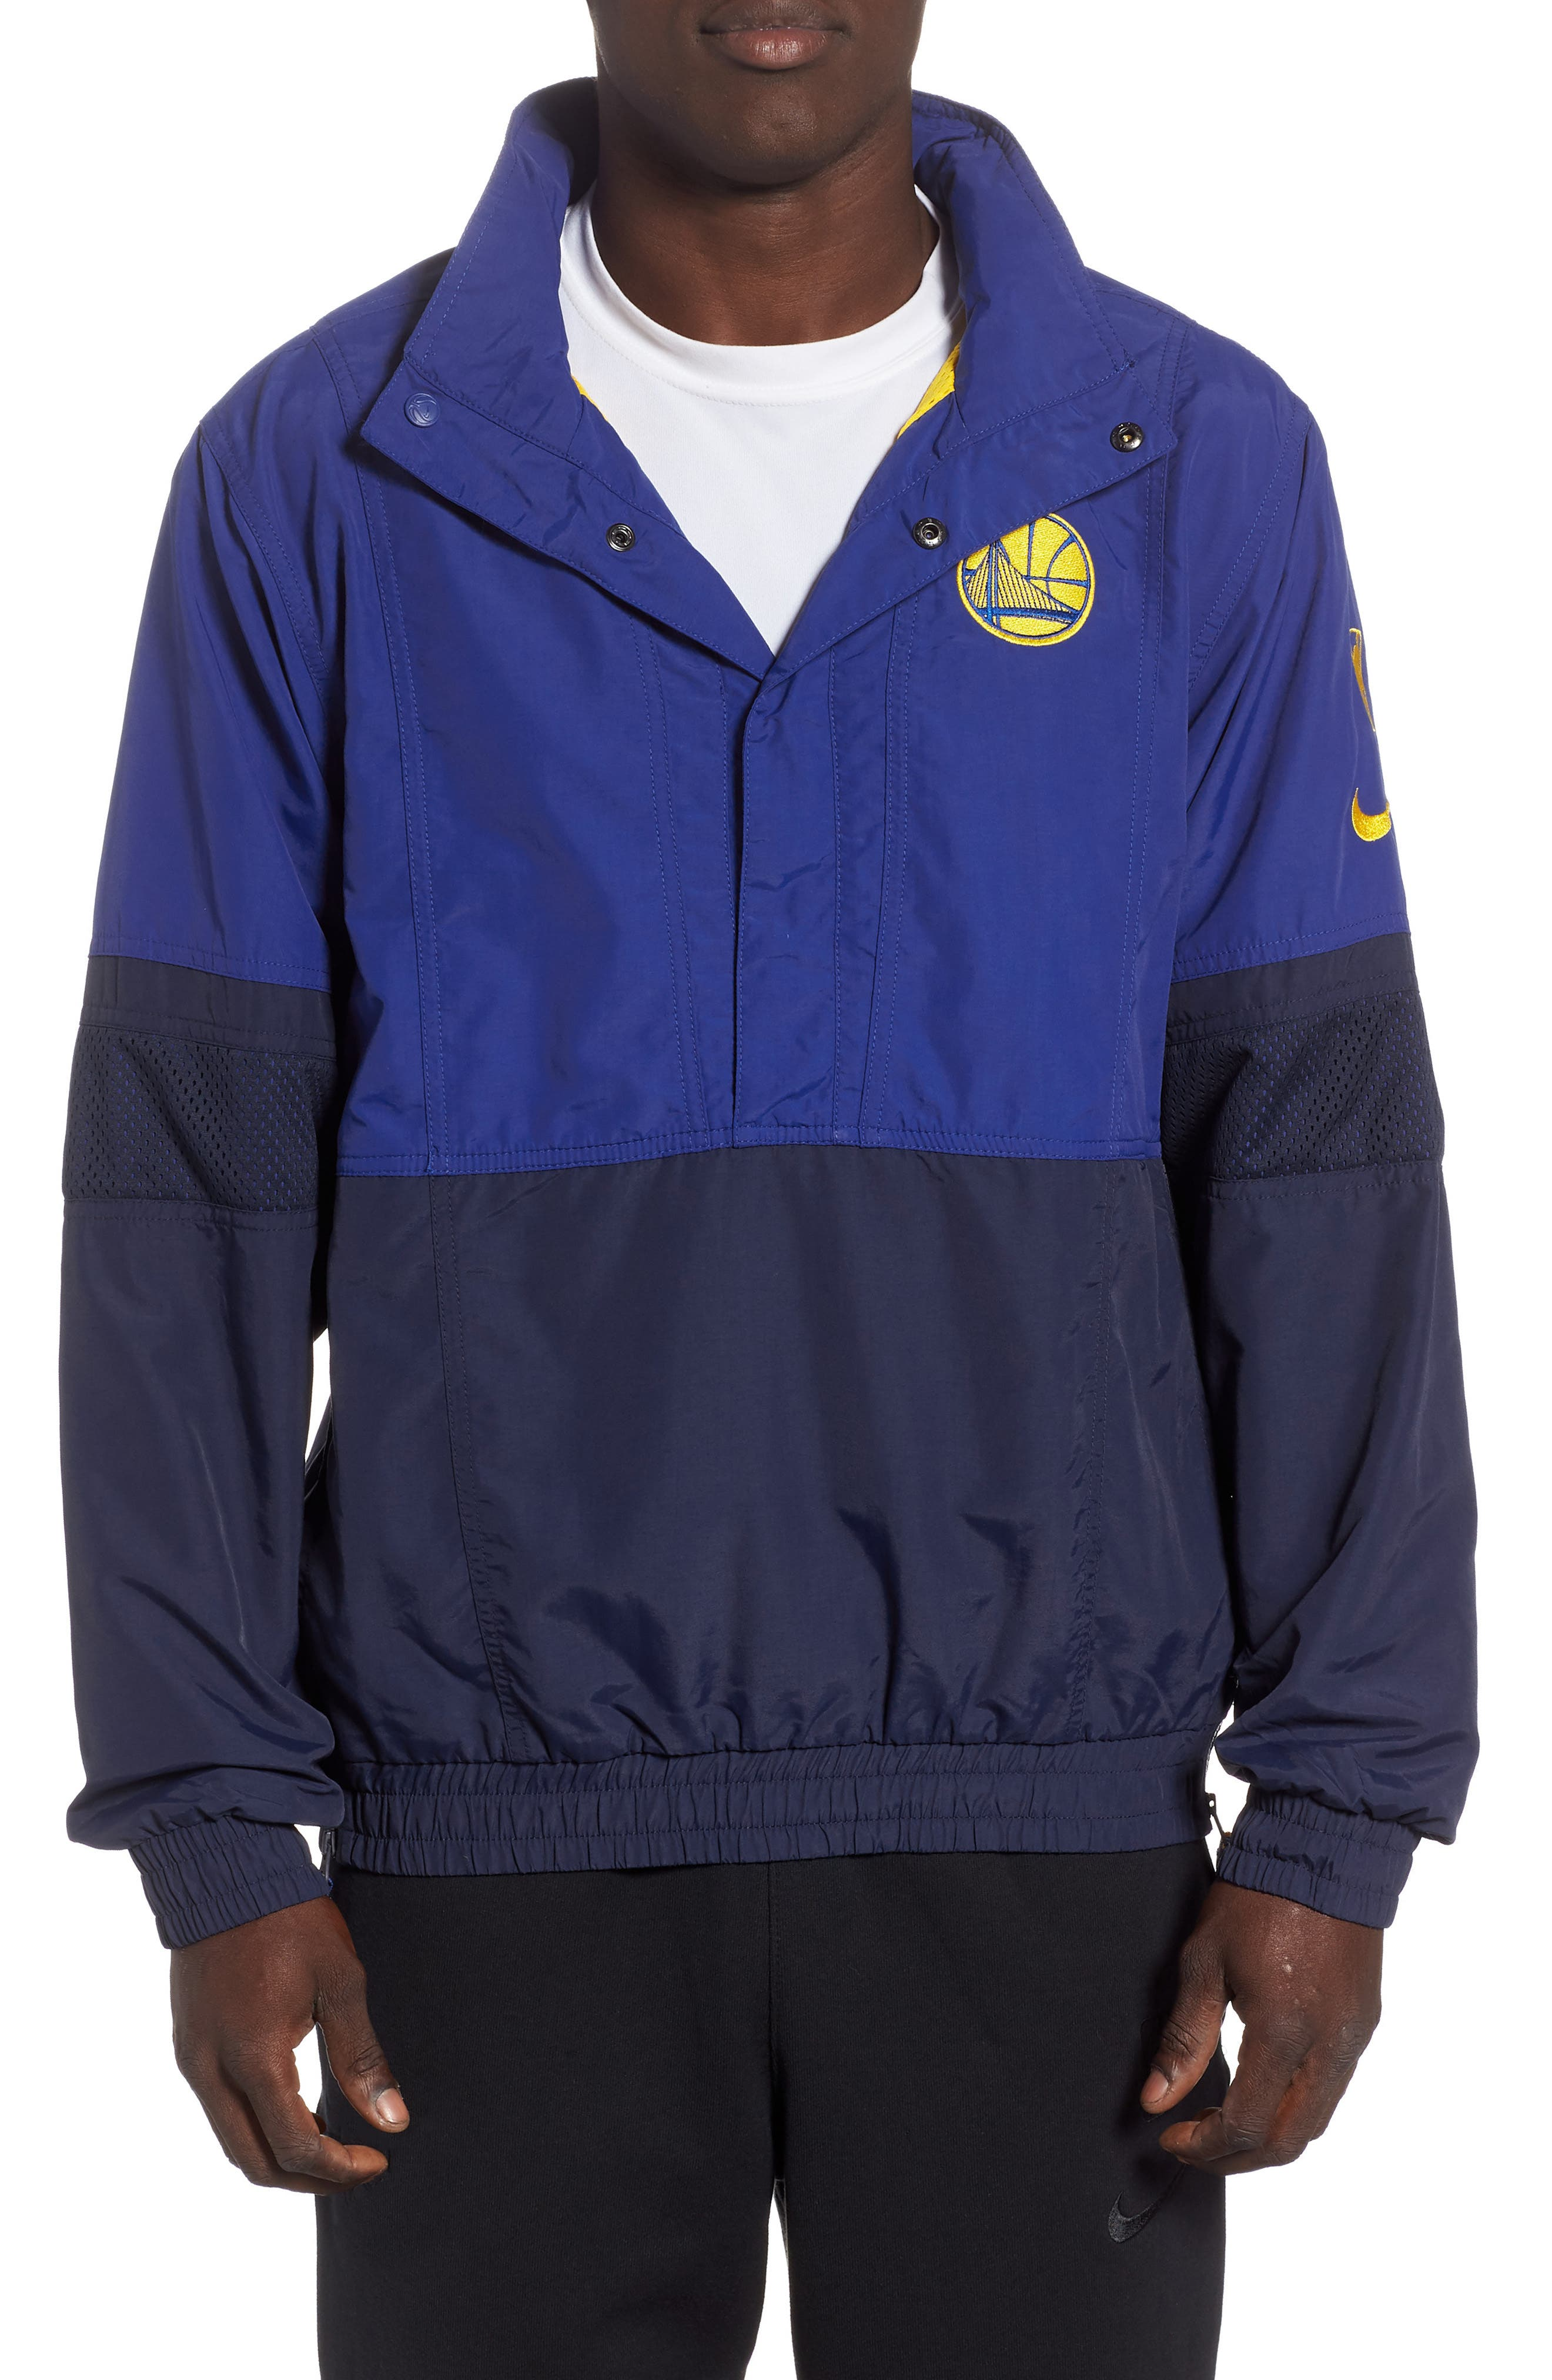 Golden State Warriors Courtside Warm-Up Jacket,                             Main thumbnail 1, color,                             RUSH BLUE/ NAVY/ AMARILLO